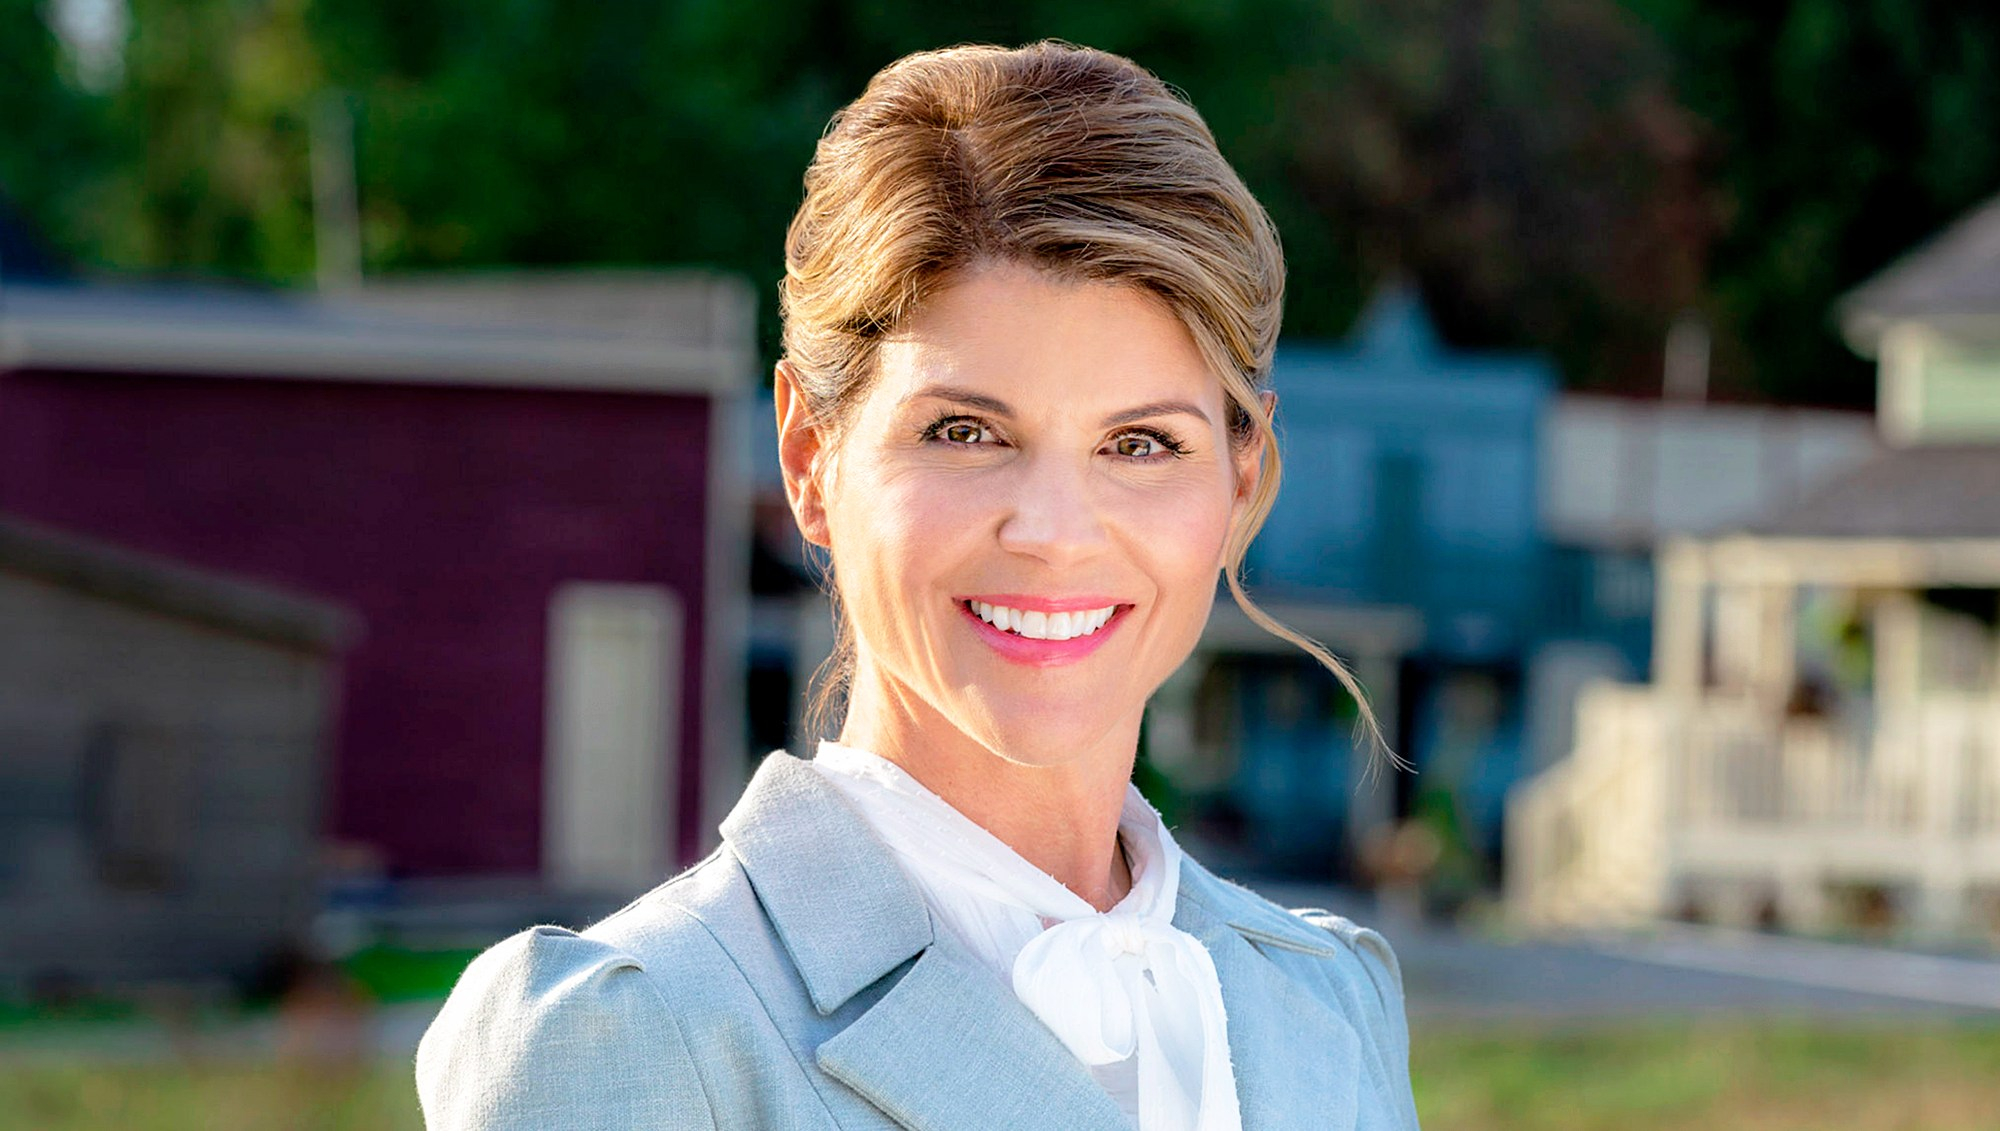 Lori Loughlin as Abigail Stanton in 'When Calls the Heart'